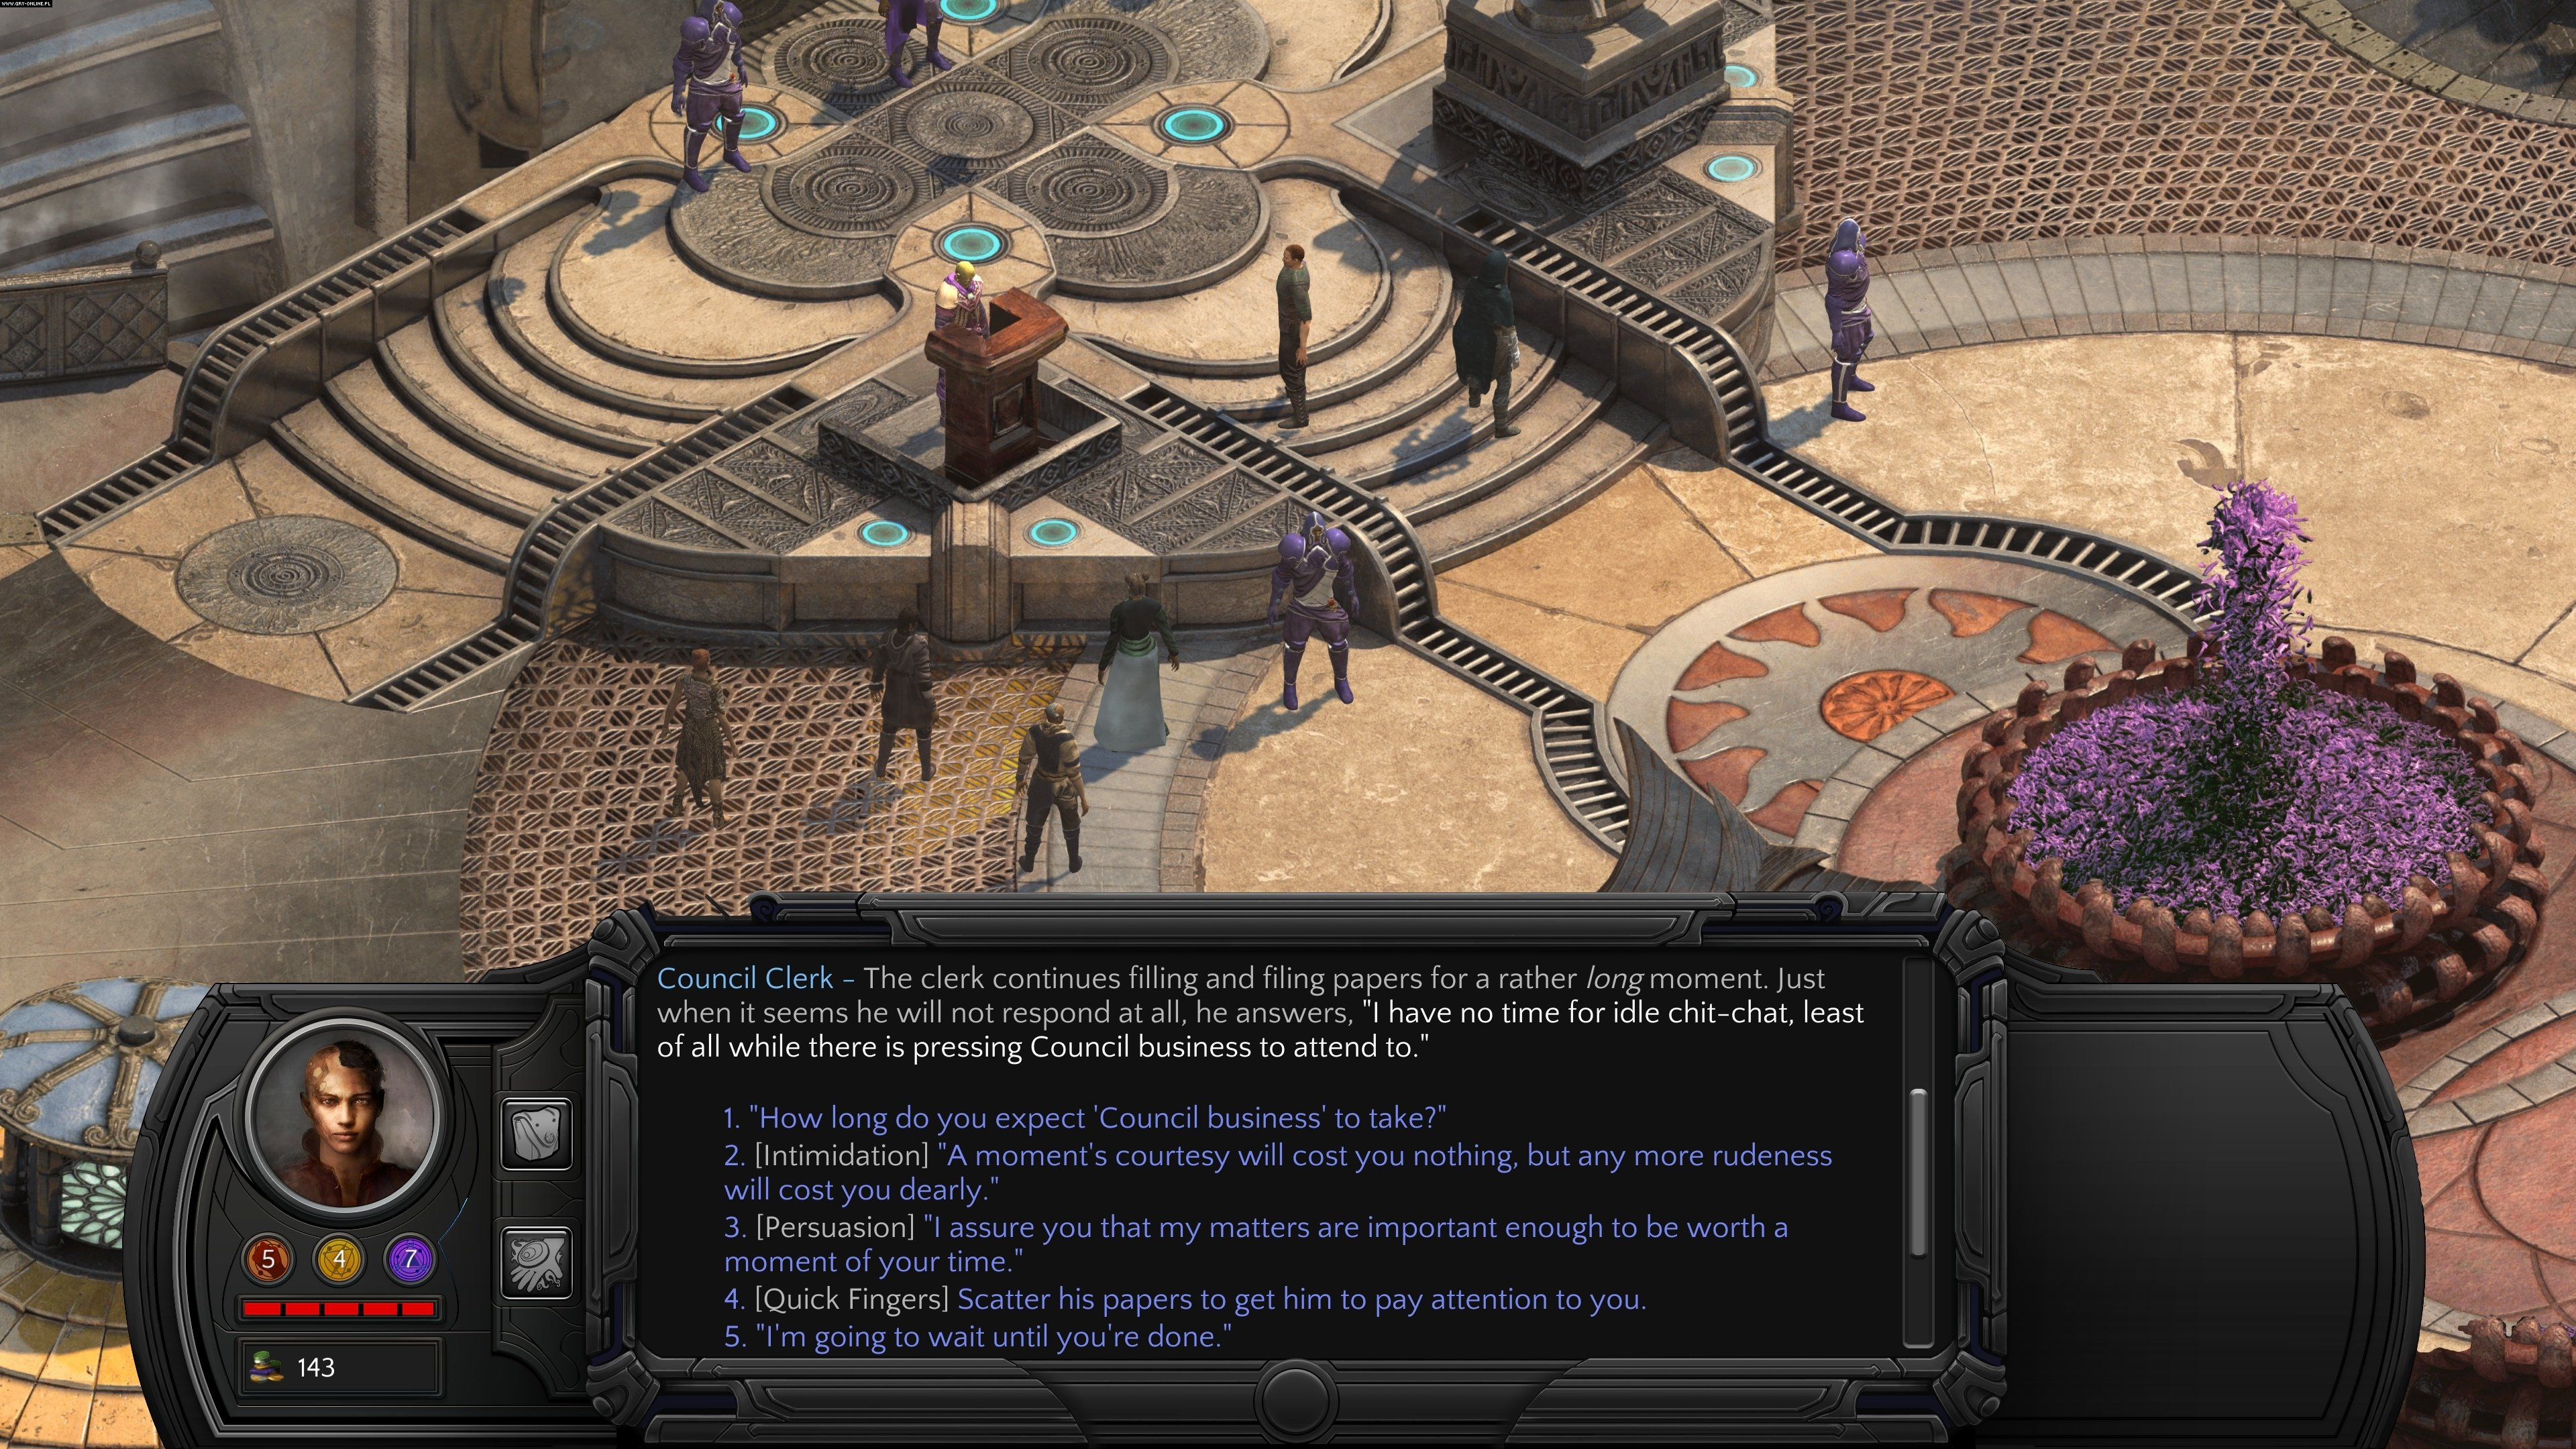 Torment: Tides of Numenera PC Games Image 8/28, inXile entertainment, Techland